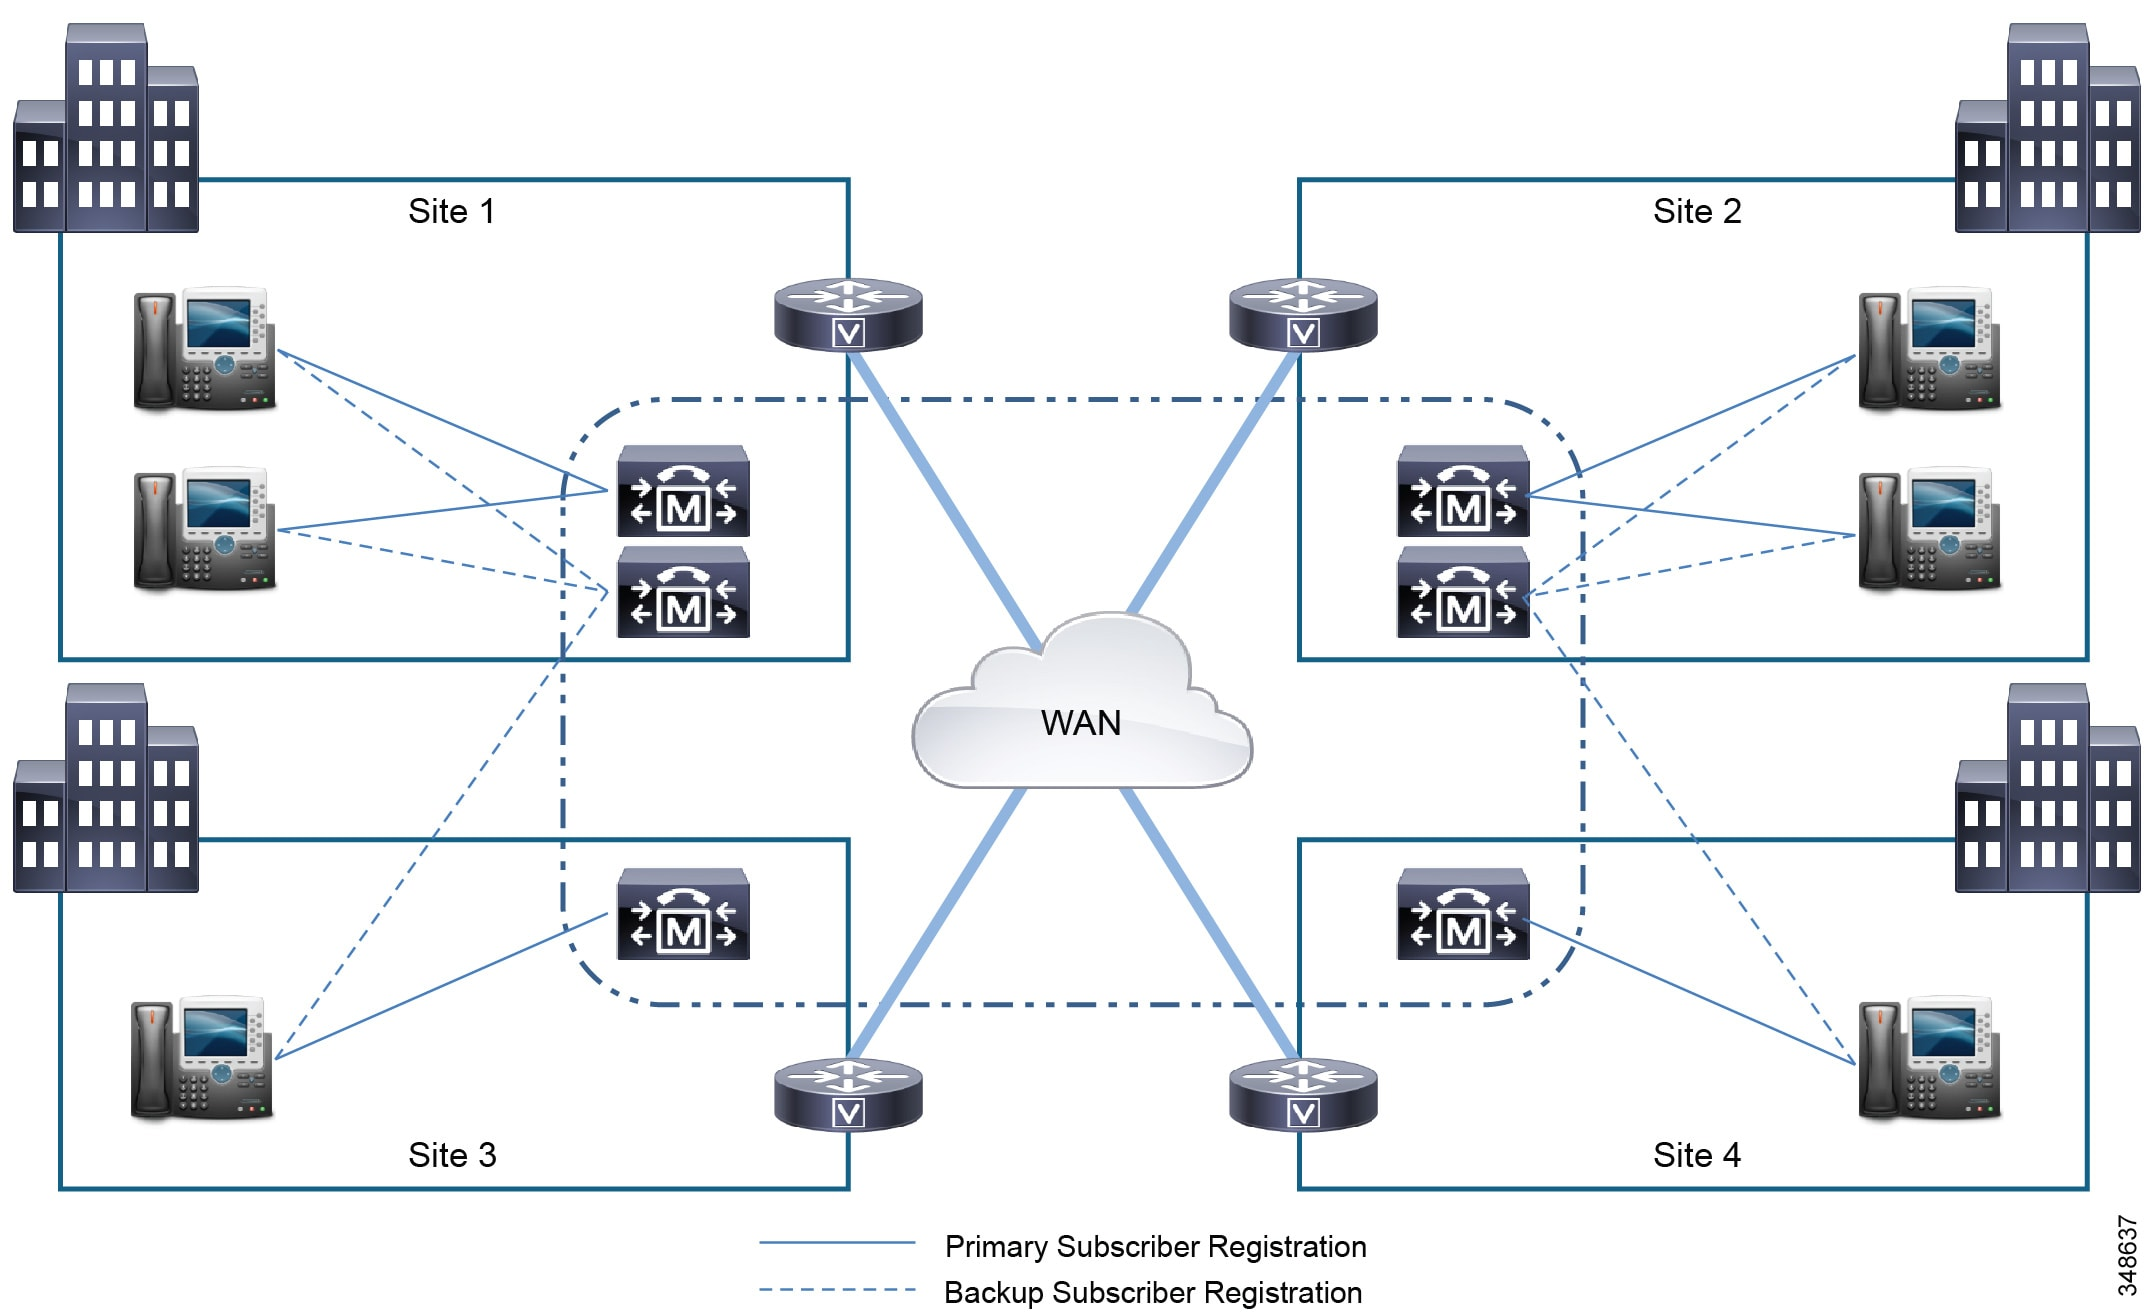 Cisco Collaboration System 11x Solution Reference Network Designs Work Likewise Cafe Floor Plan Design On Ups Circuit Diagram Pdf Figure 10 22 Clustering Over The Wan Remote Failover Model With Four Sites